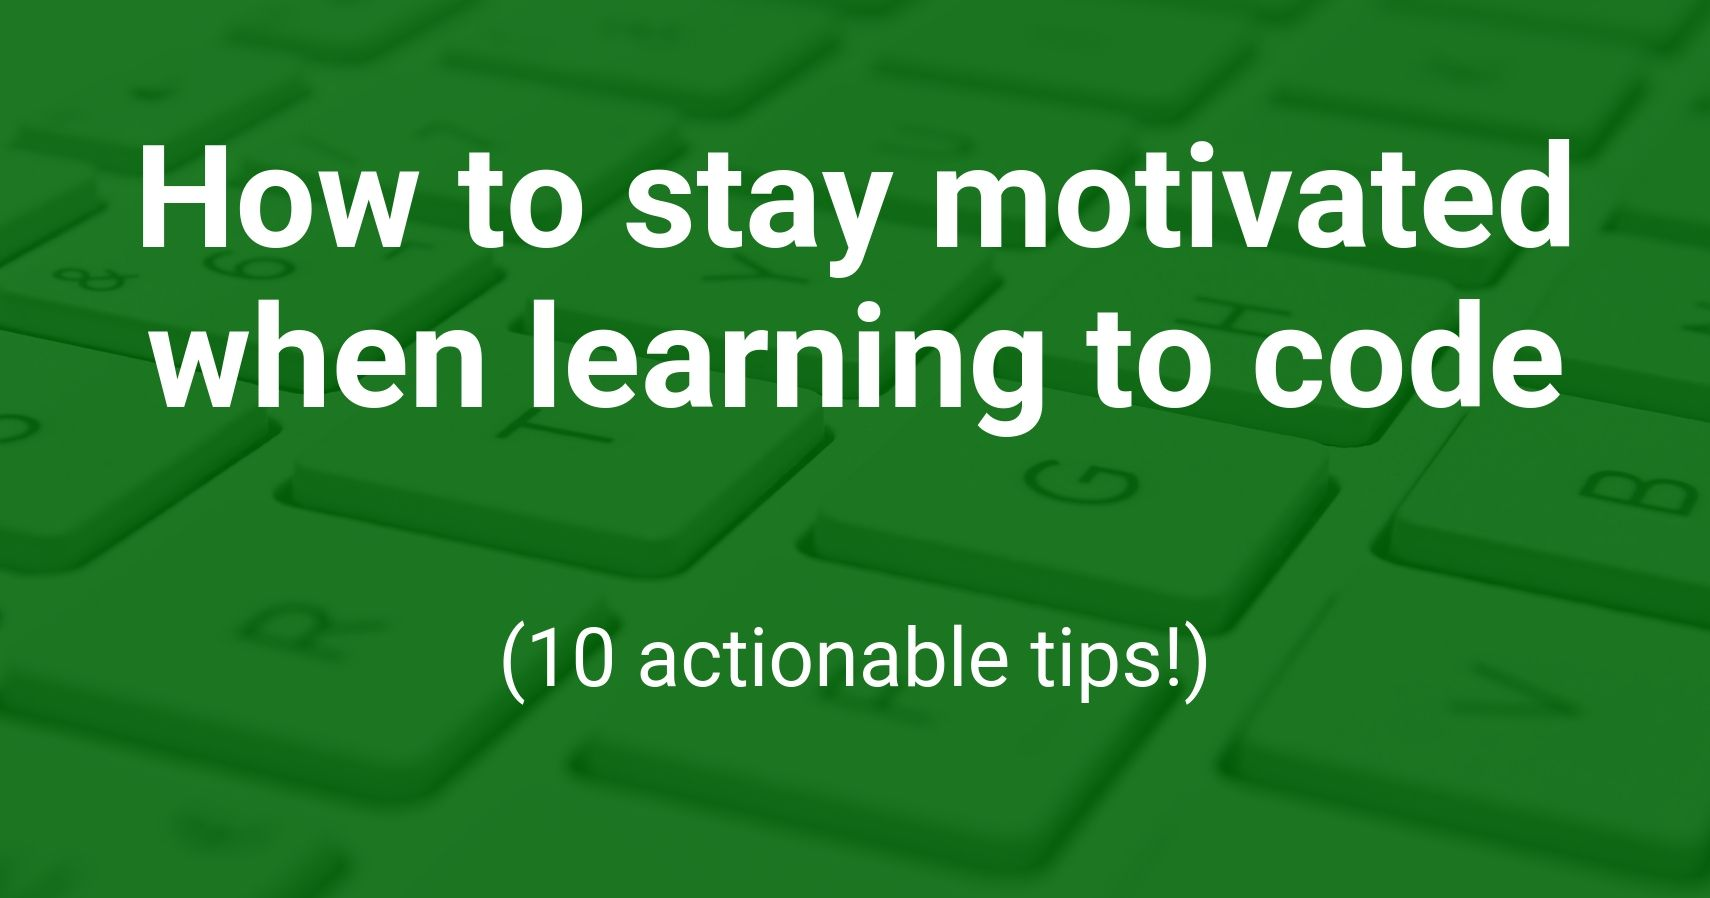 How to stay motivated when learning to code (10 actionable